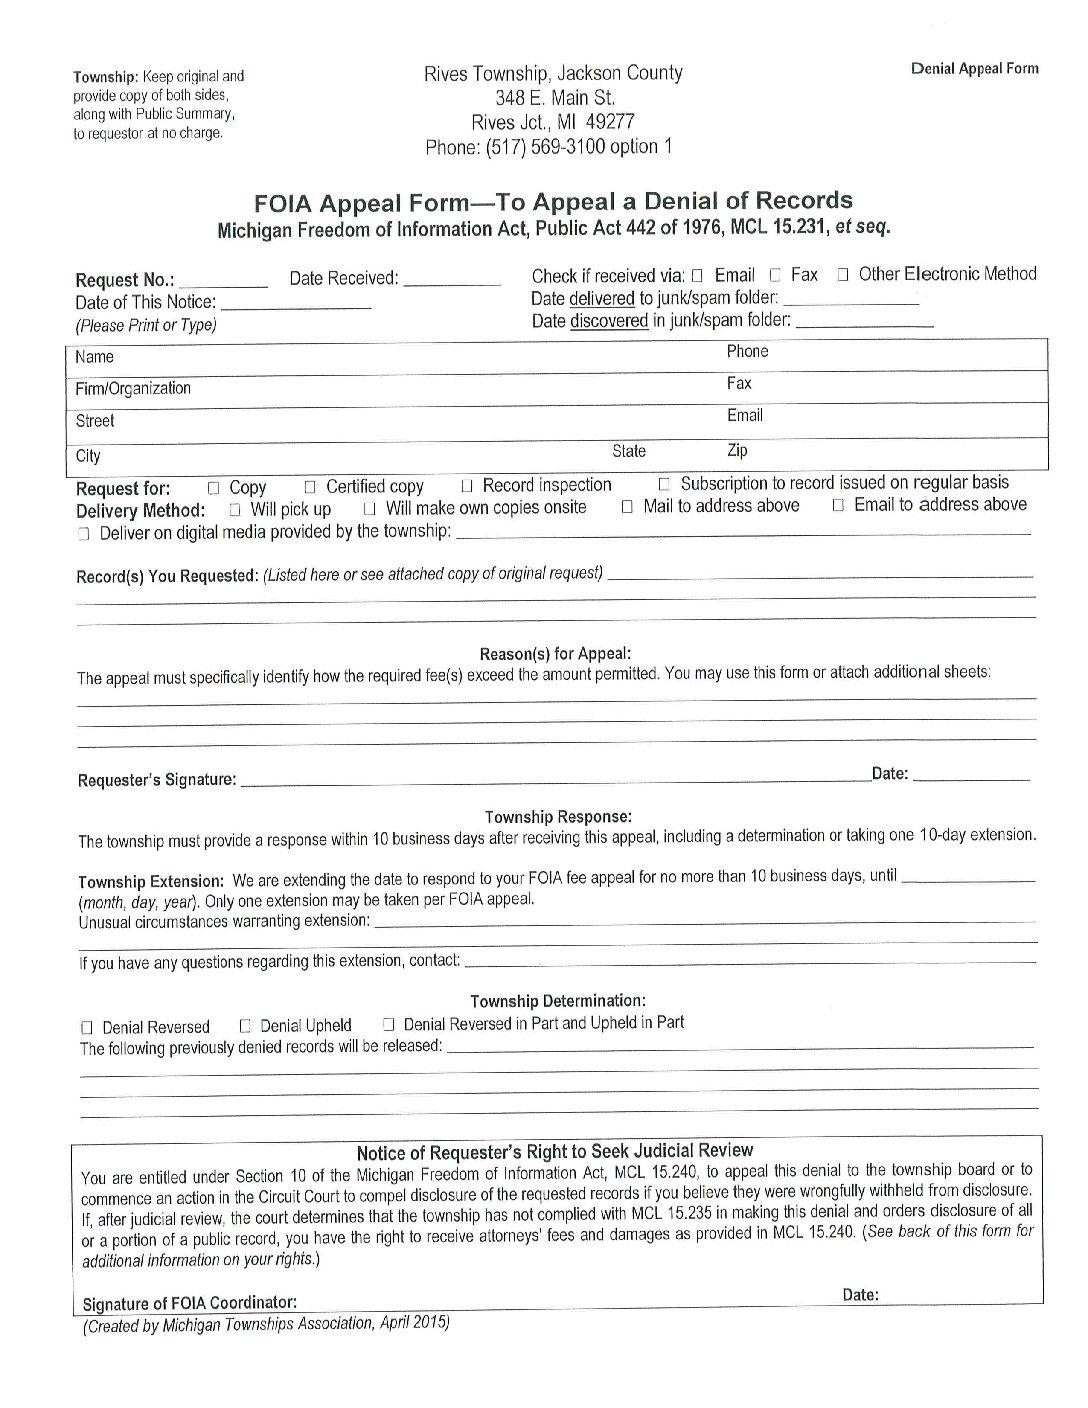 FOIA-Appeal-Form-to-Appeal-a-Denial-of-Records-pdf